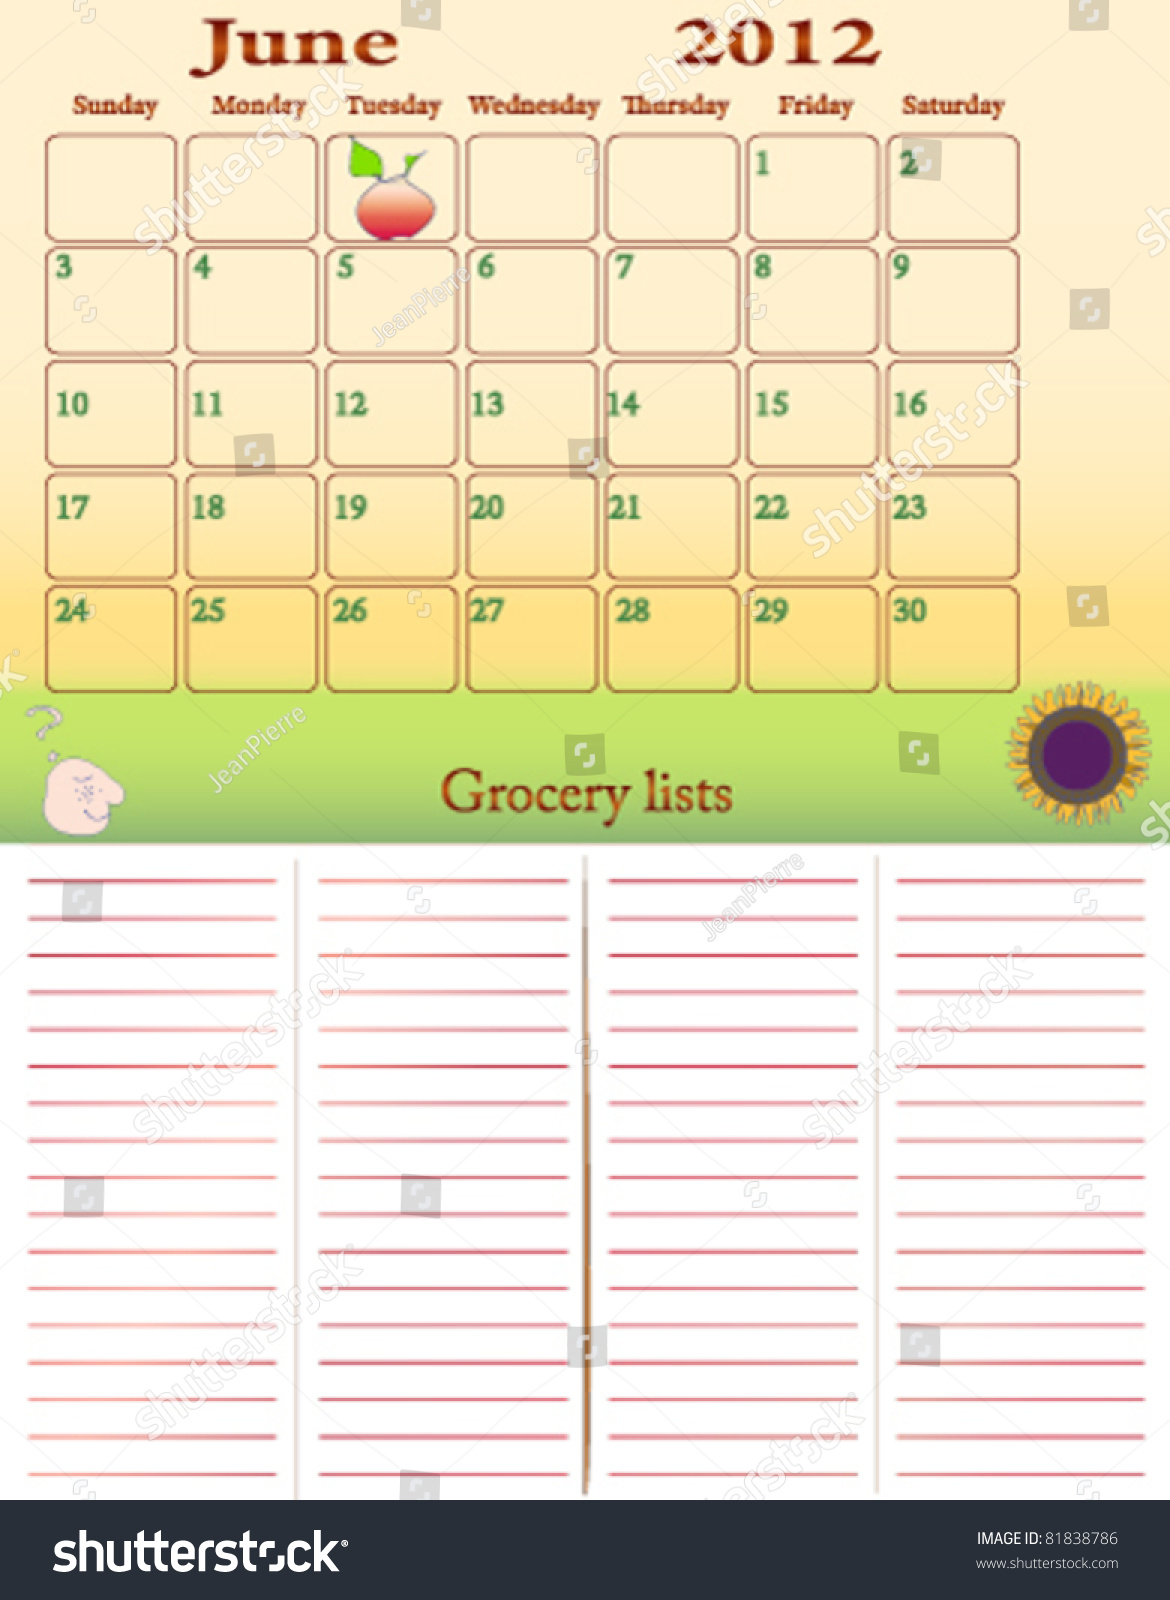 July 2012 weekly grocery lists help stock vector 81838786 shutterstock help yourself cooking and do not forget your grocery items solutioingenieria Gallery